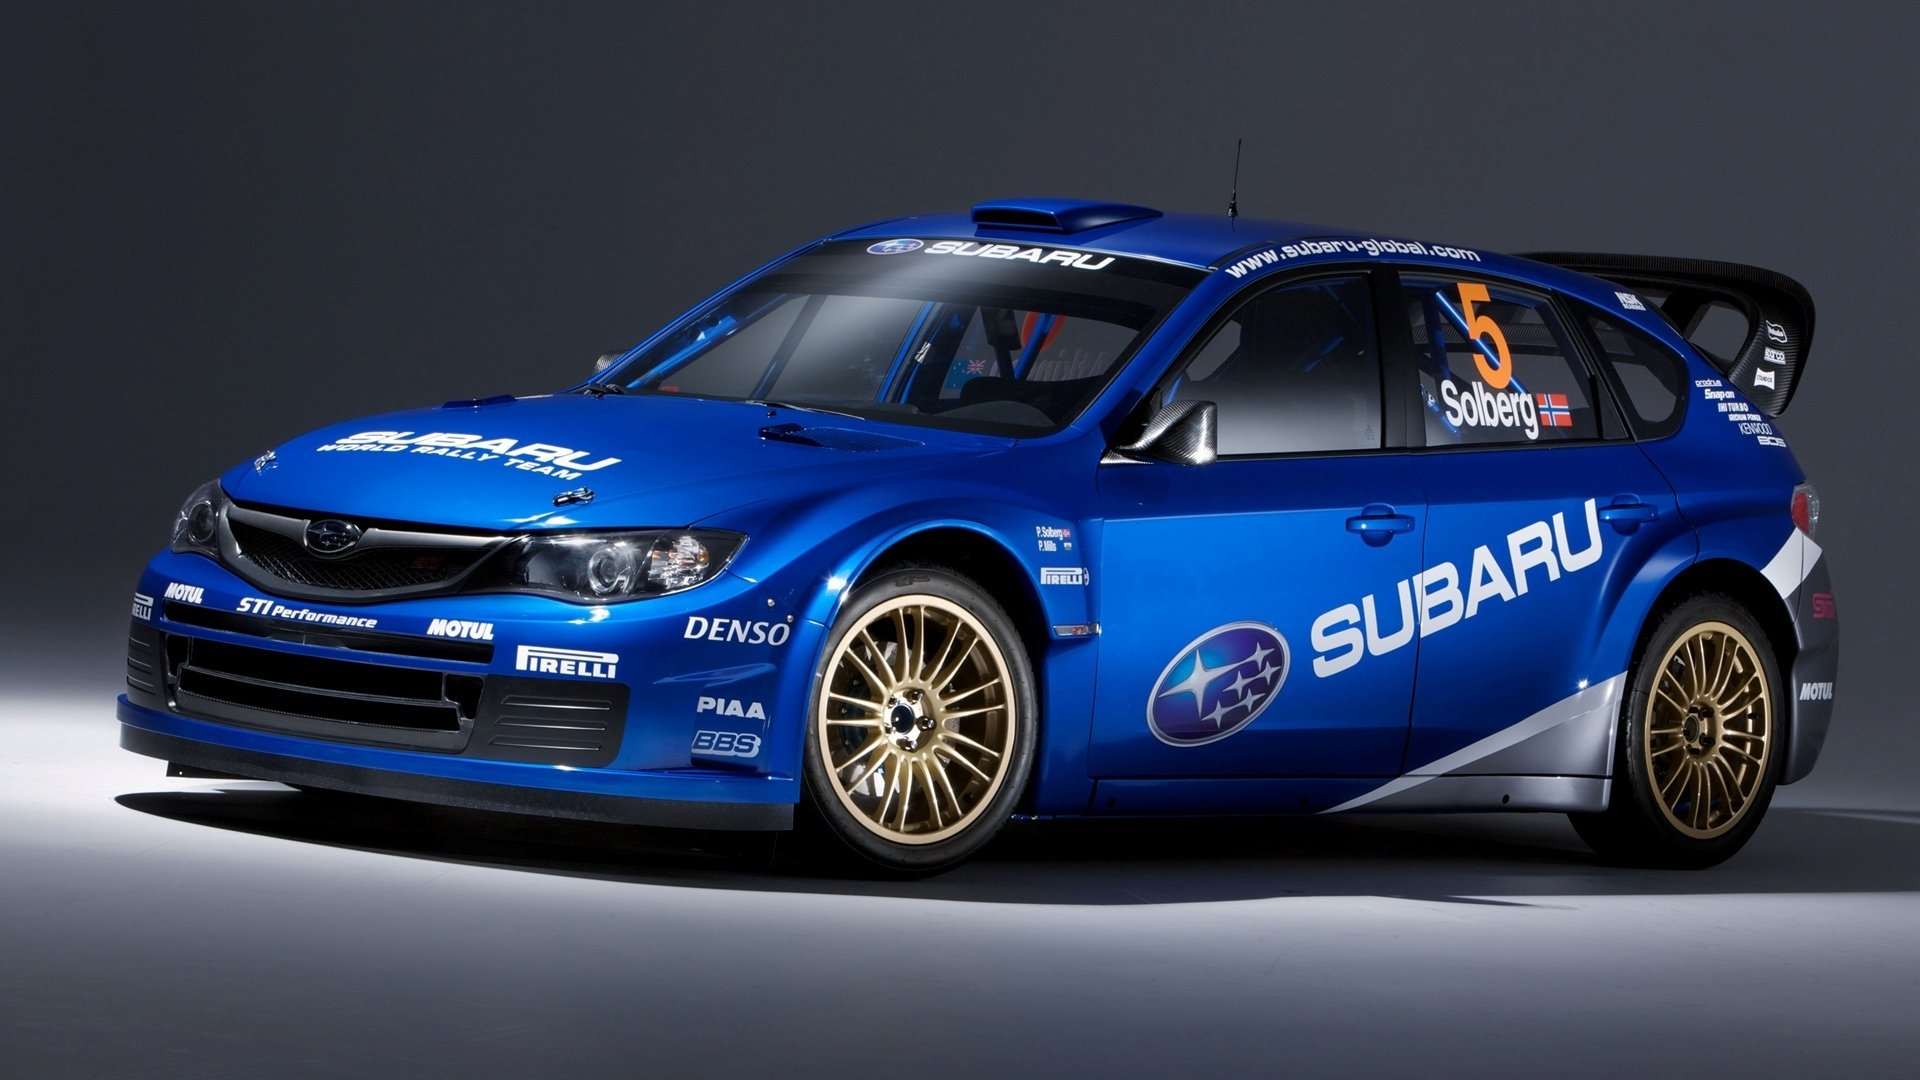 subaru rally car wallpaper wallpapersafari. Black Bedroom Furniture Sets. Home Design Ideas